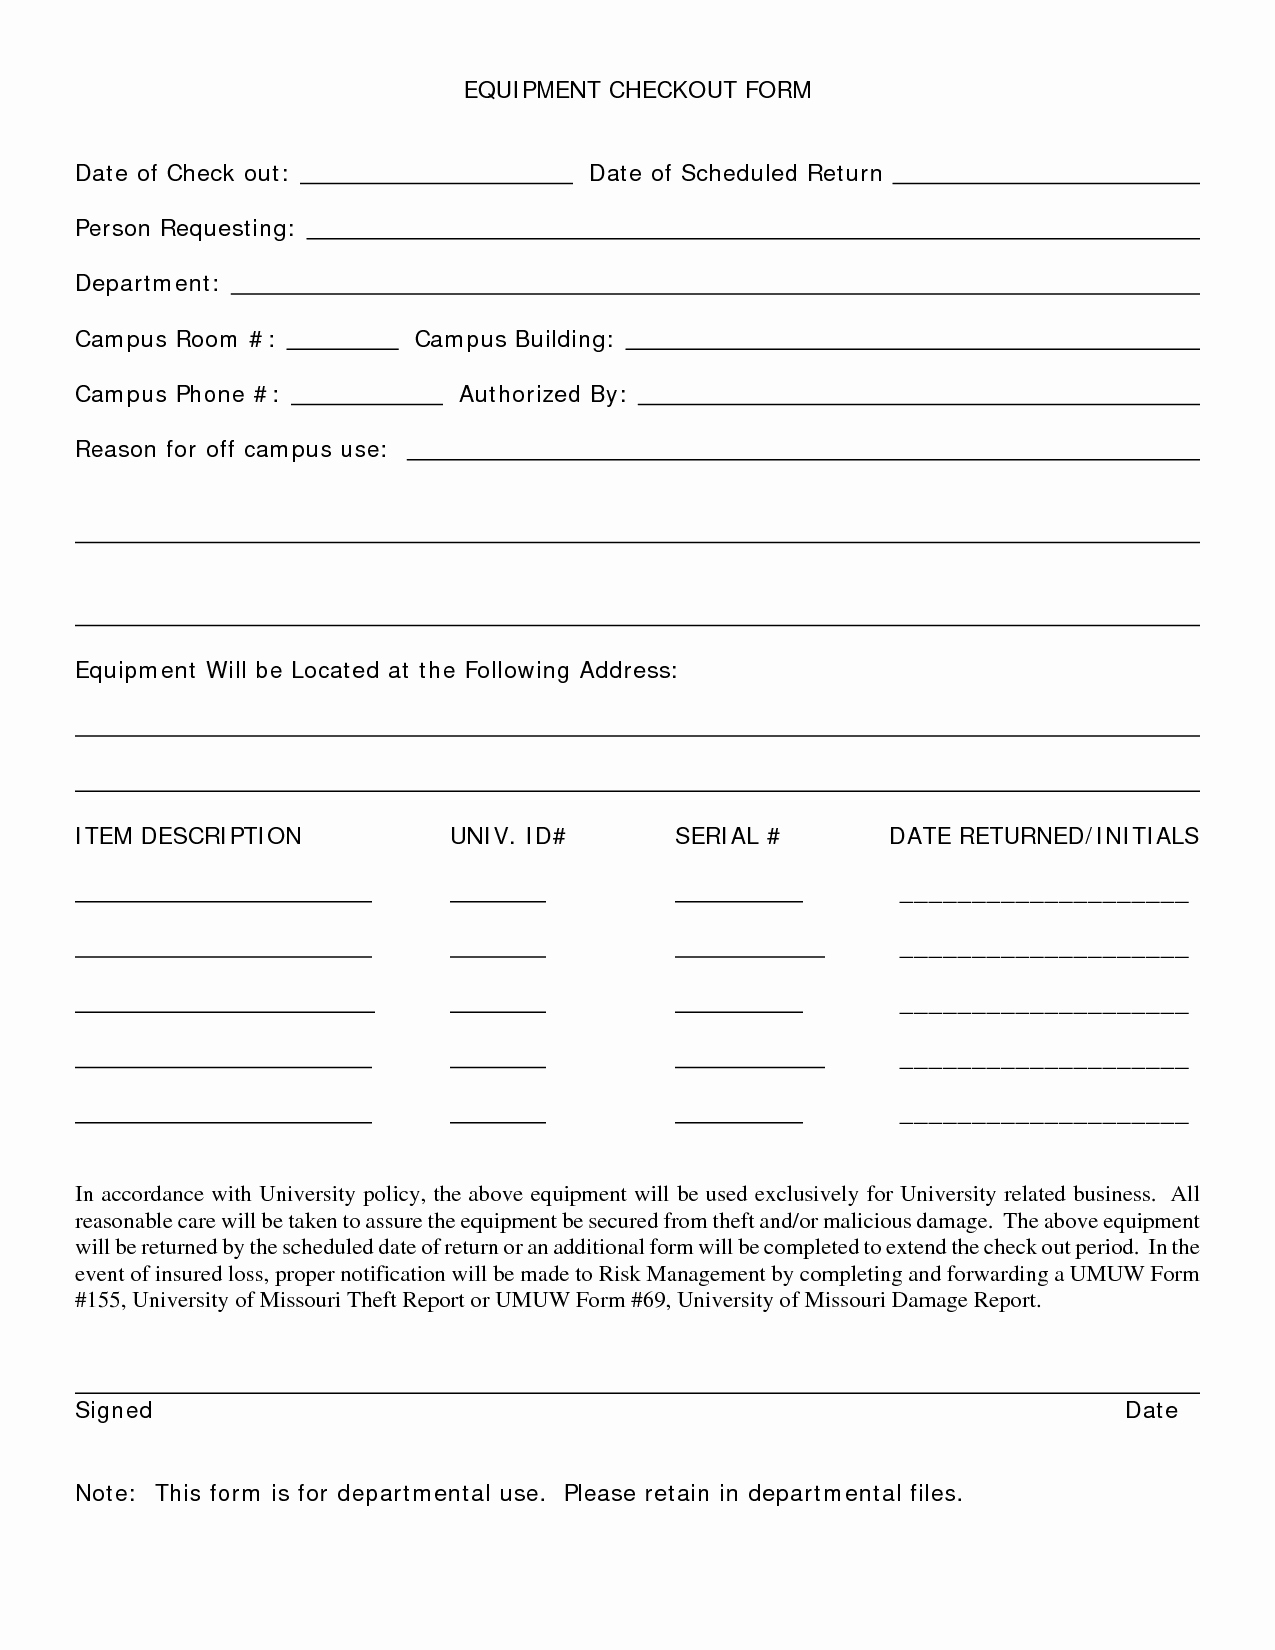 Equipment Checkout form Template Best Of Best S Of Employee Equipment Check Out form